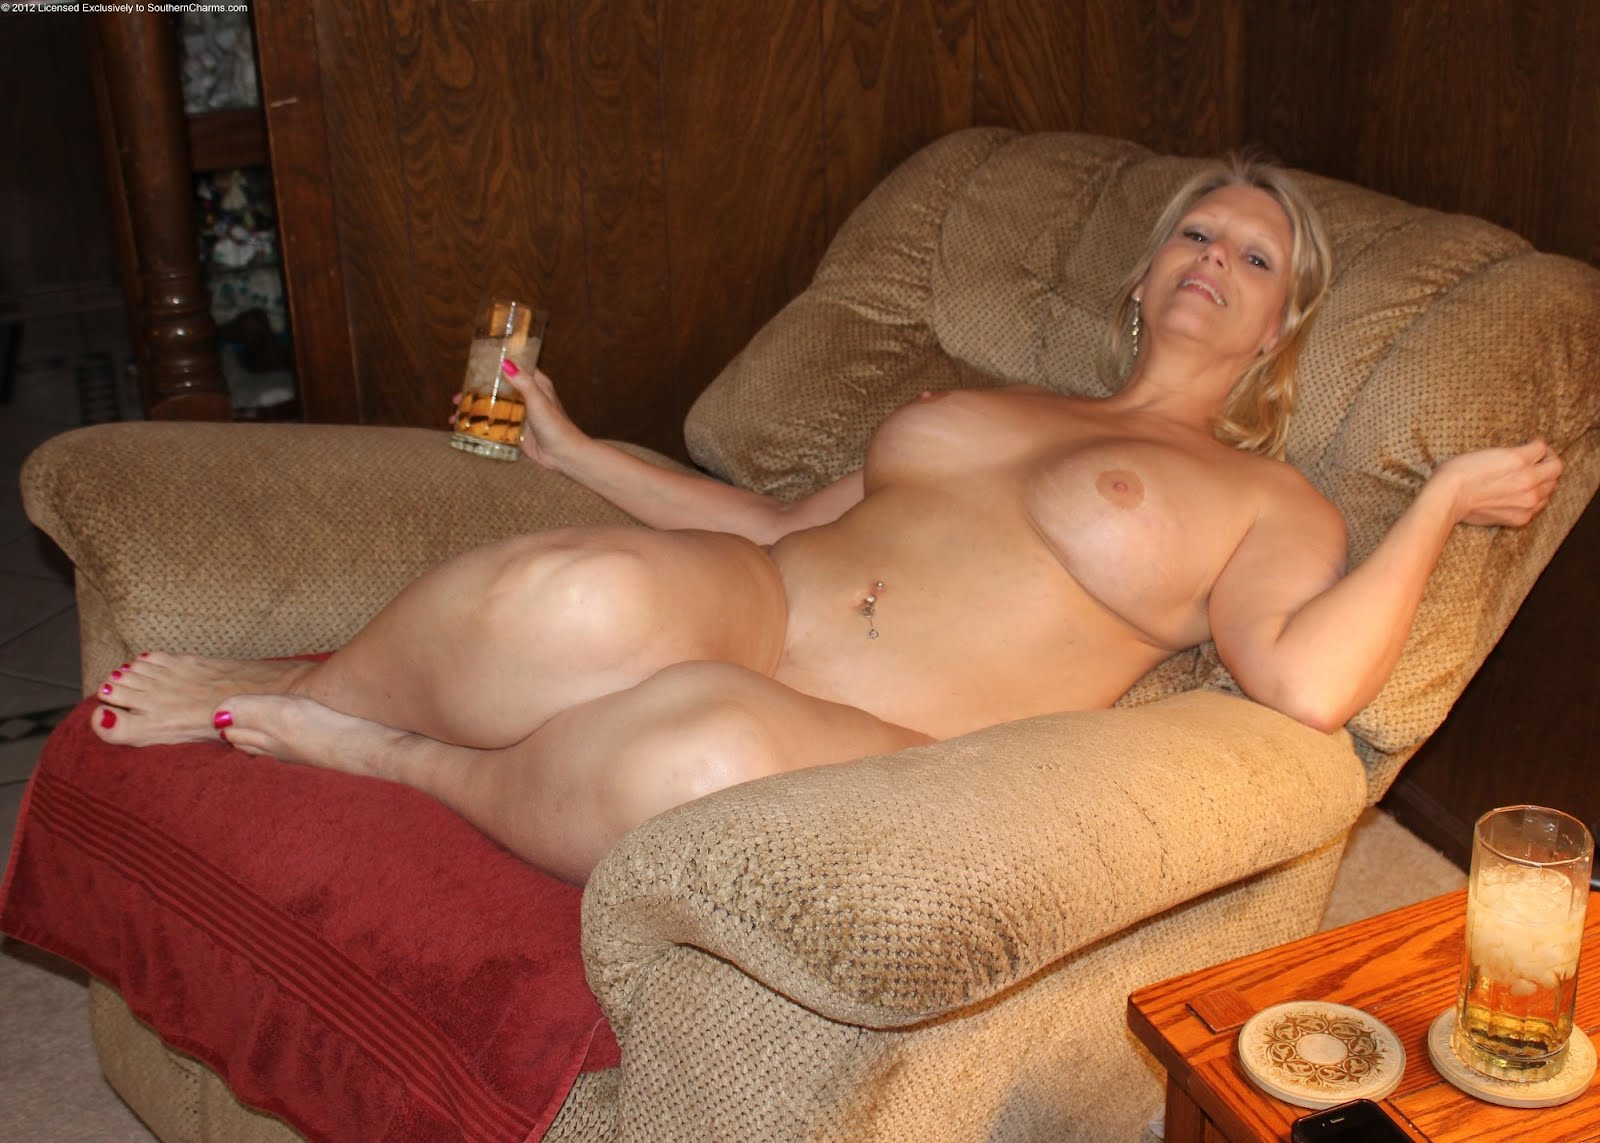 southern charms amateur galleries